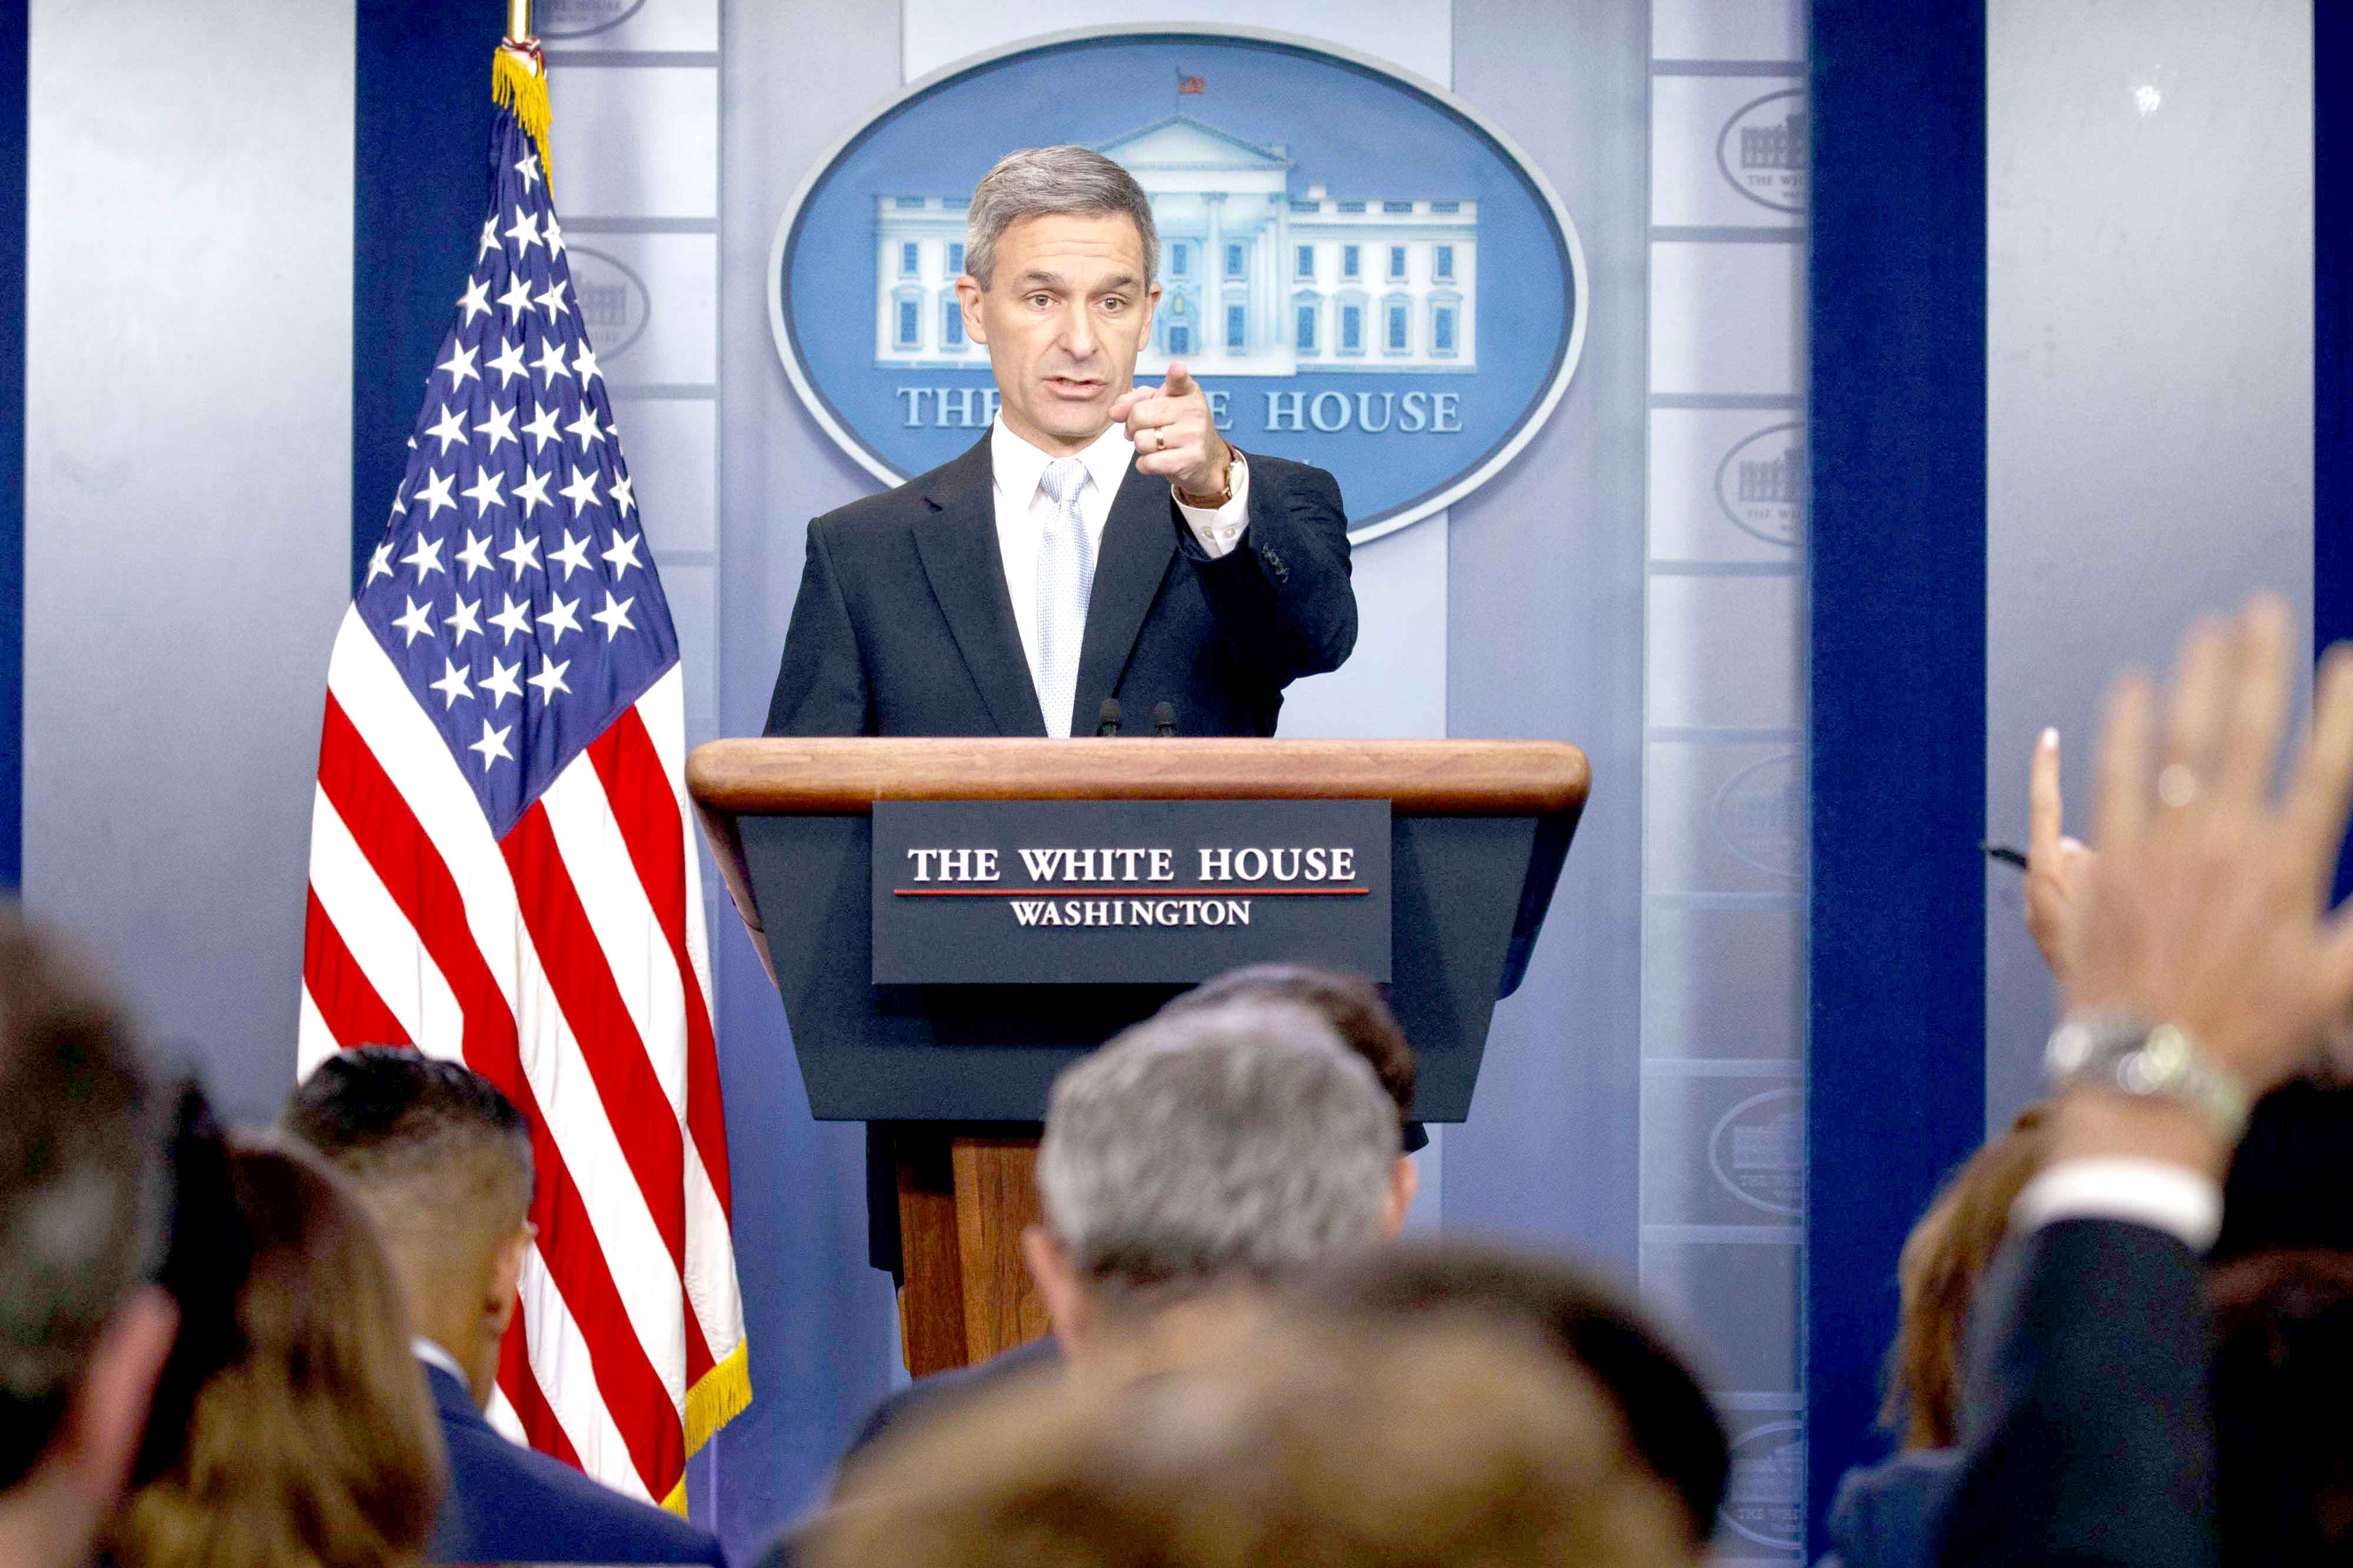 Acting Director of United States Citizenship and Immigration Services Ken Cuccinelli speaks at the White House, August 12. (AP)